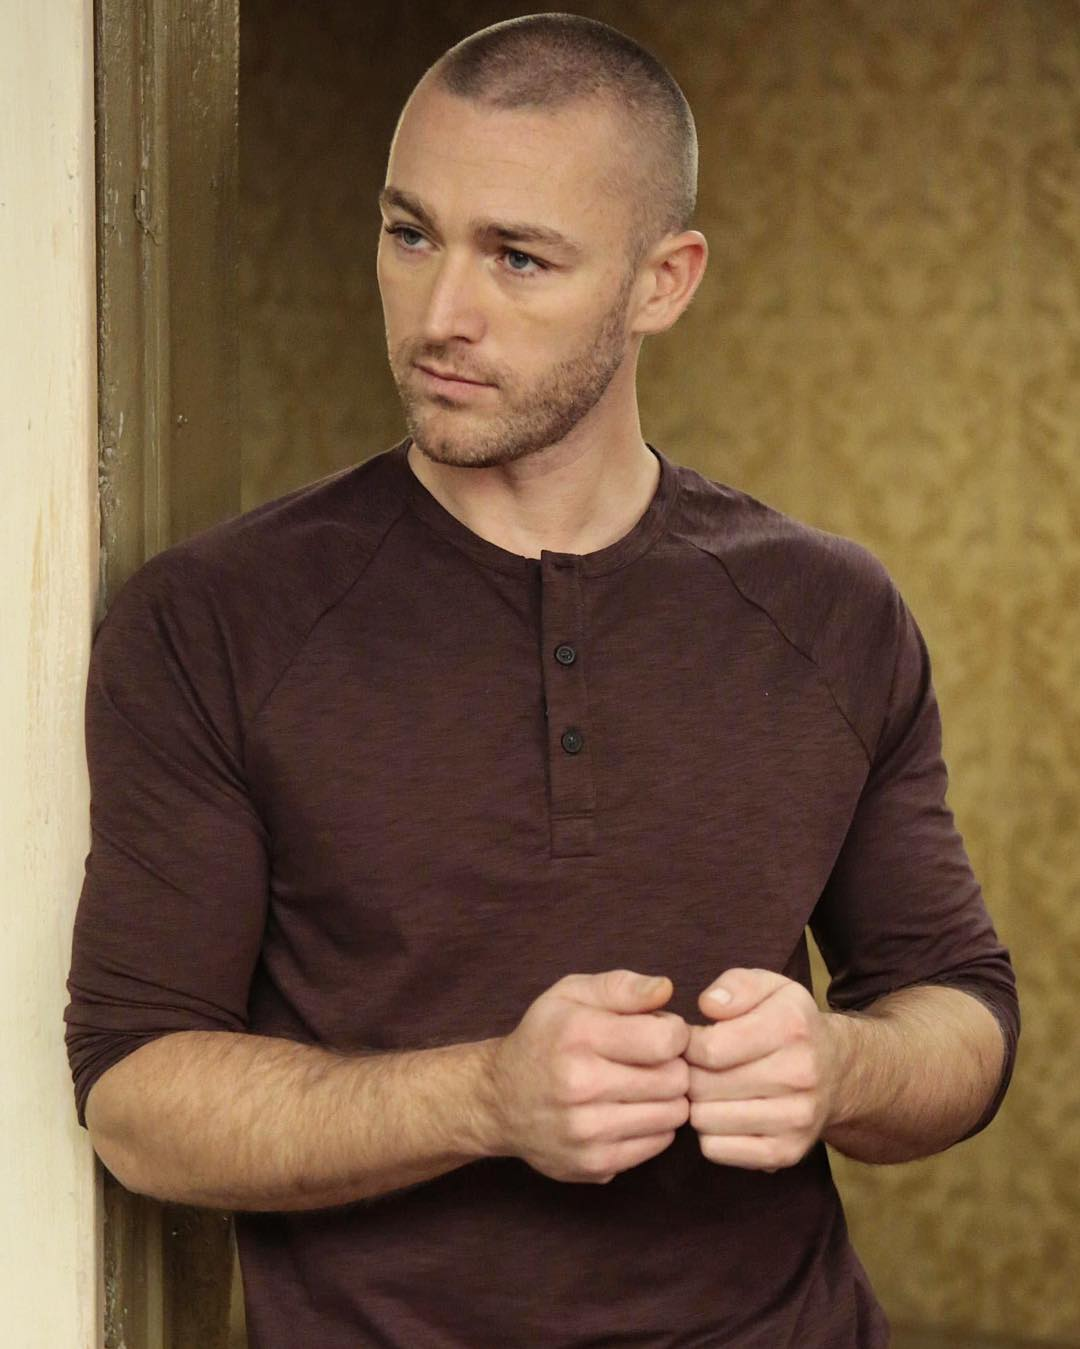 jake mclaughlin facebook